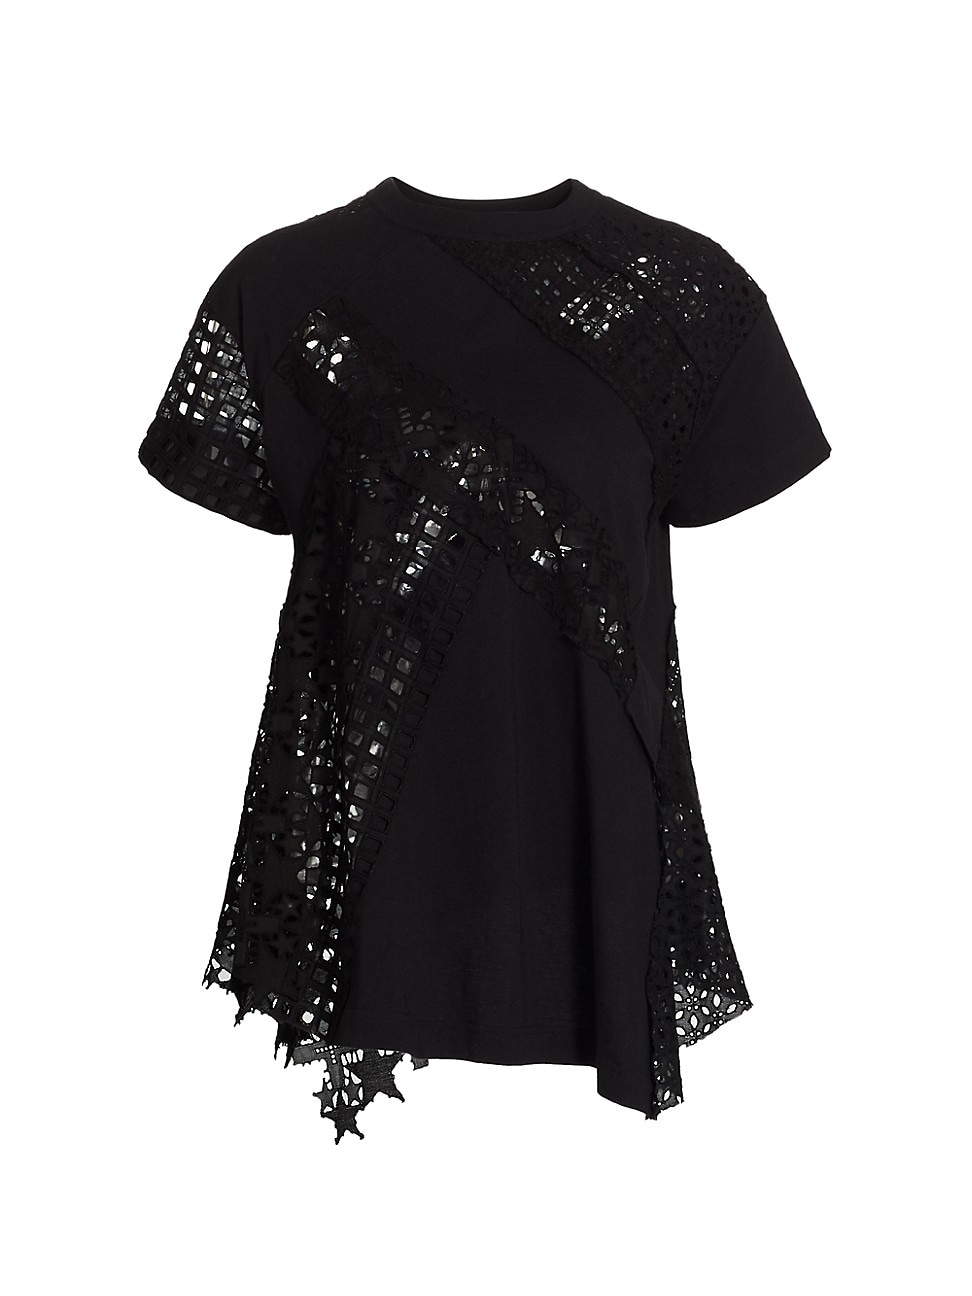 Sacai WOMEN'S EMBROIDERED LACE PULLOVER